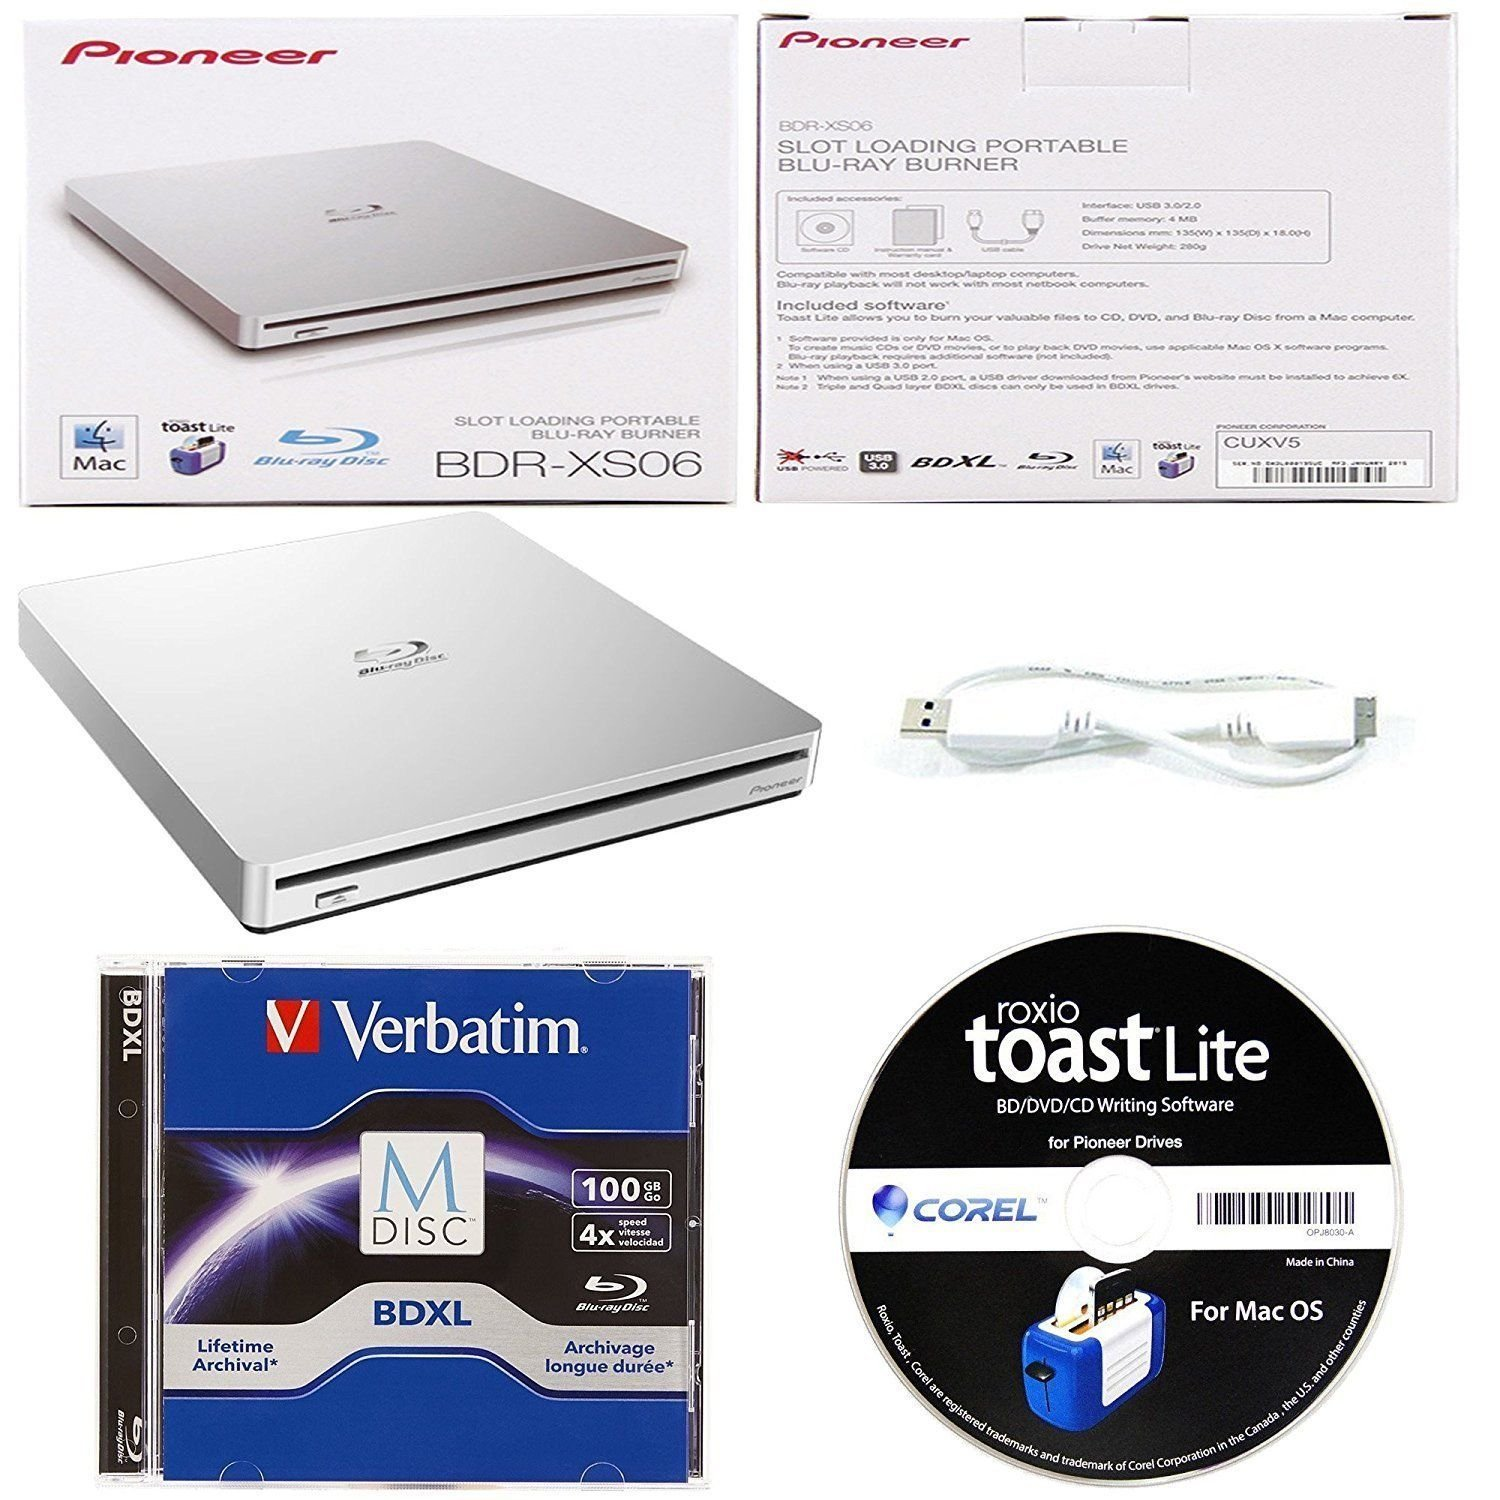 Pioneer 6X BDR-XS06 Slim Portable Blu-ray Burner Bundle with 15 Pack M-DISC BD - Supports USB 3.0, BDXL, BD, DVD, and CD Media (Silver, Retail Box)